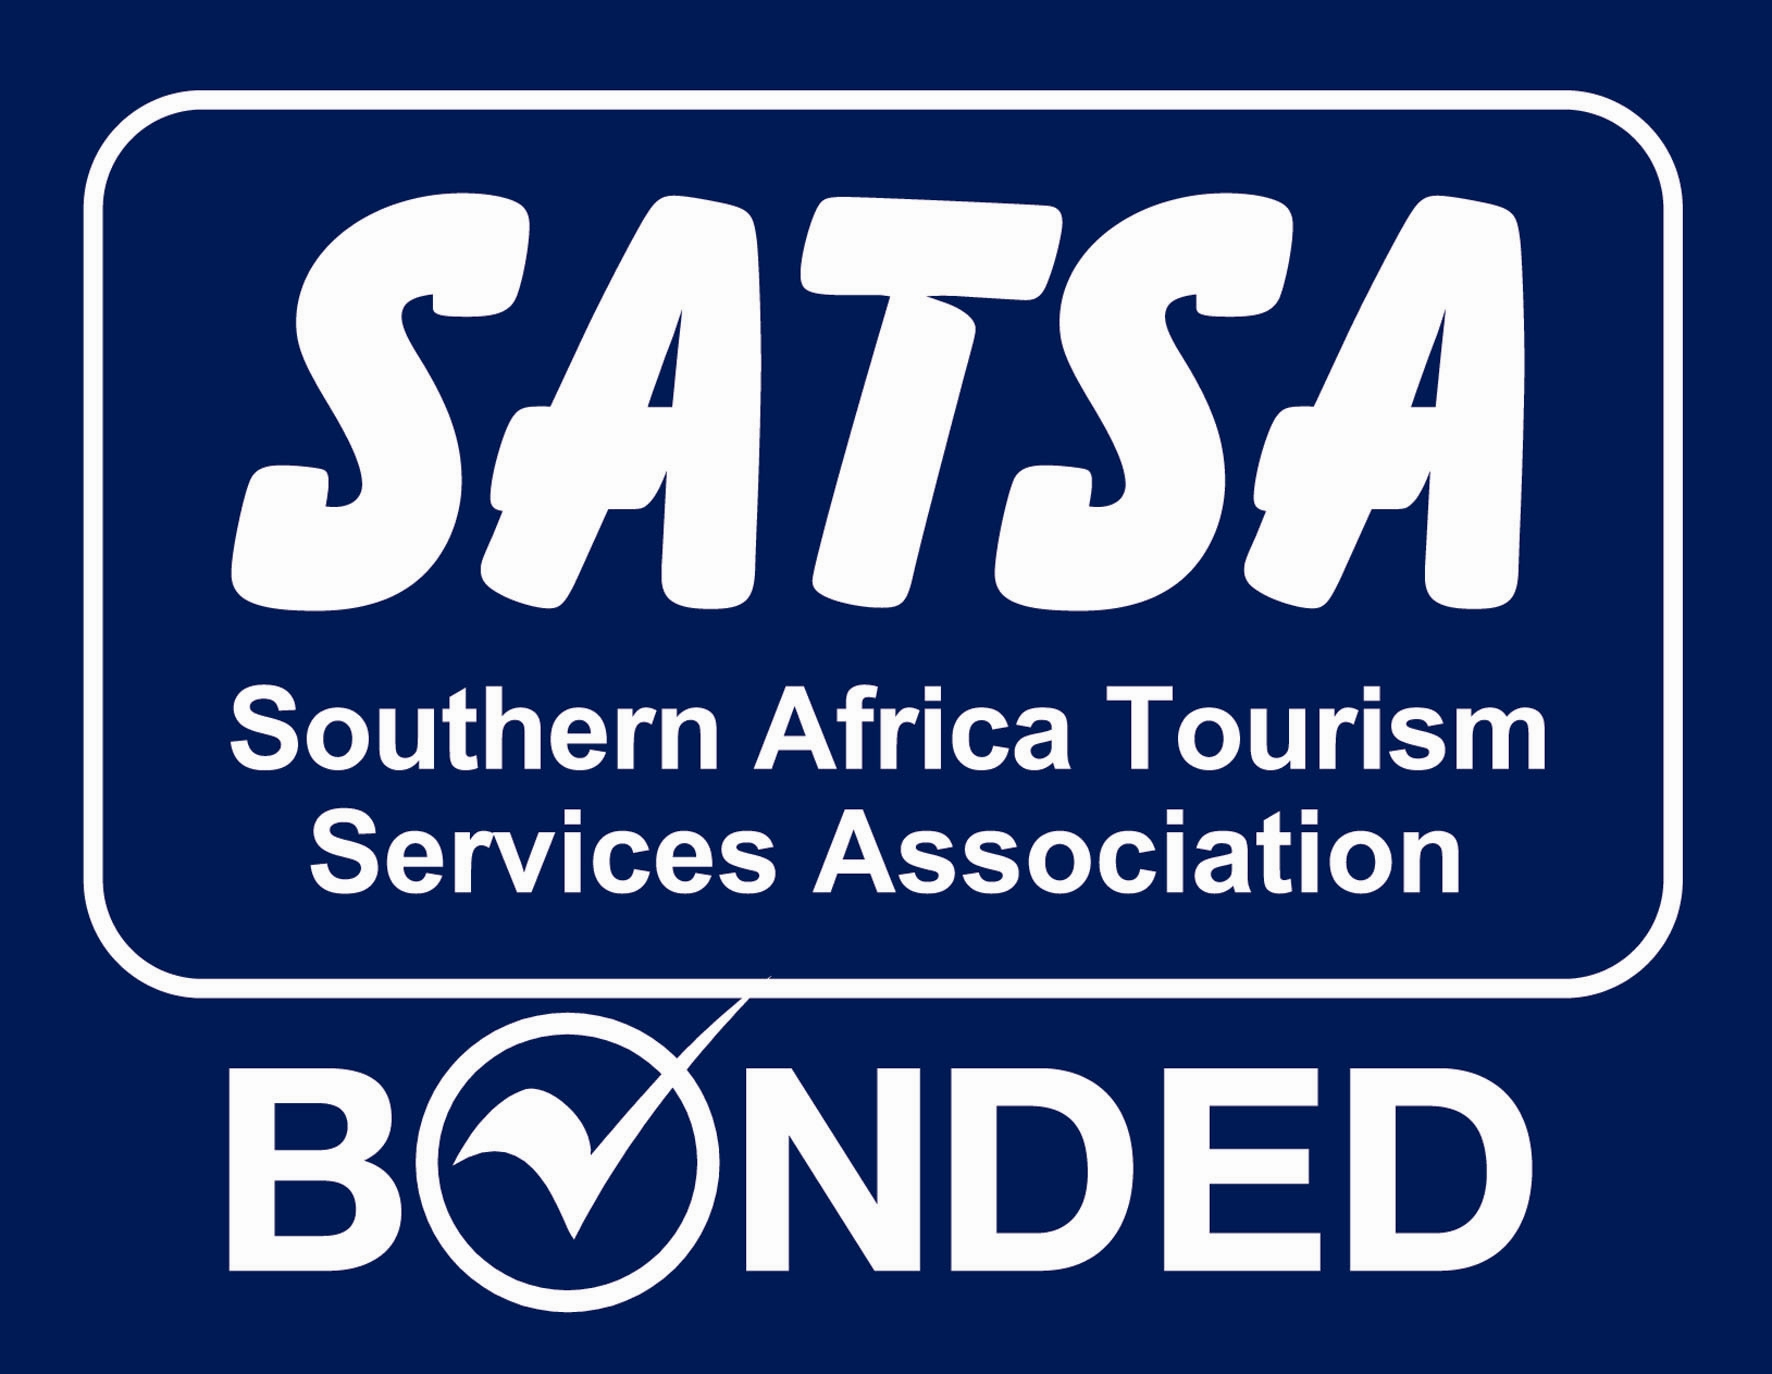 South Africa Tourism Services Association Bonded